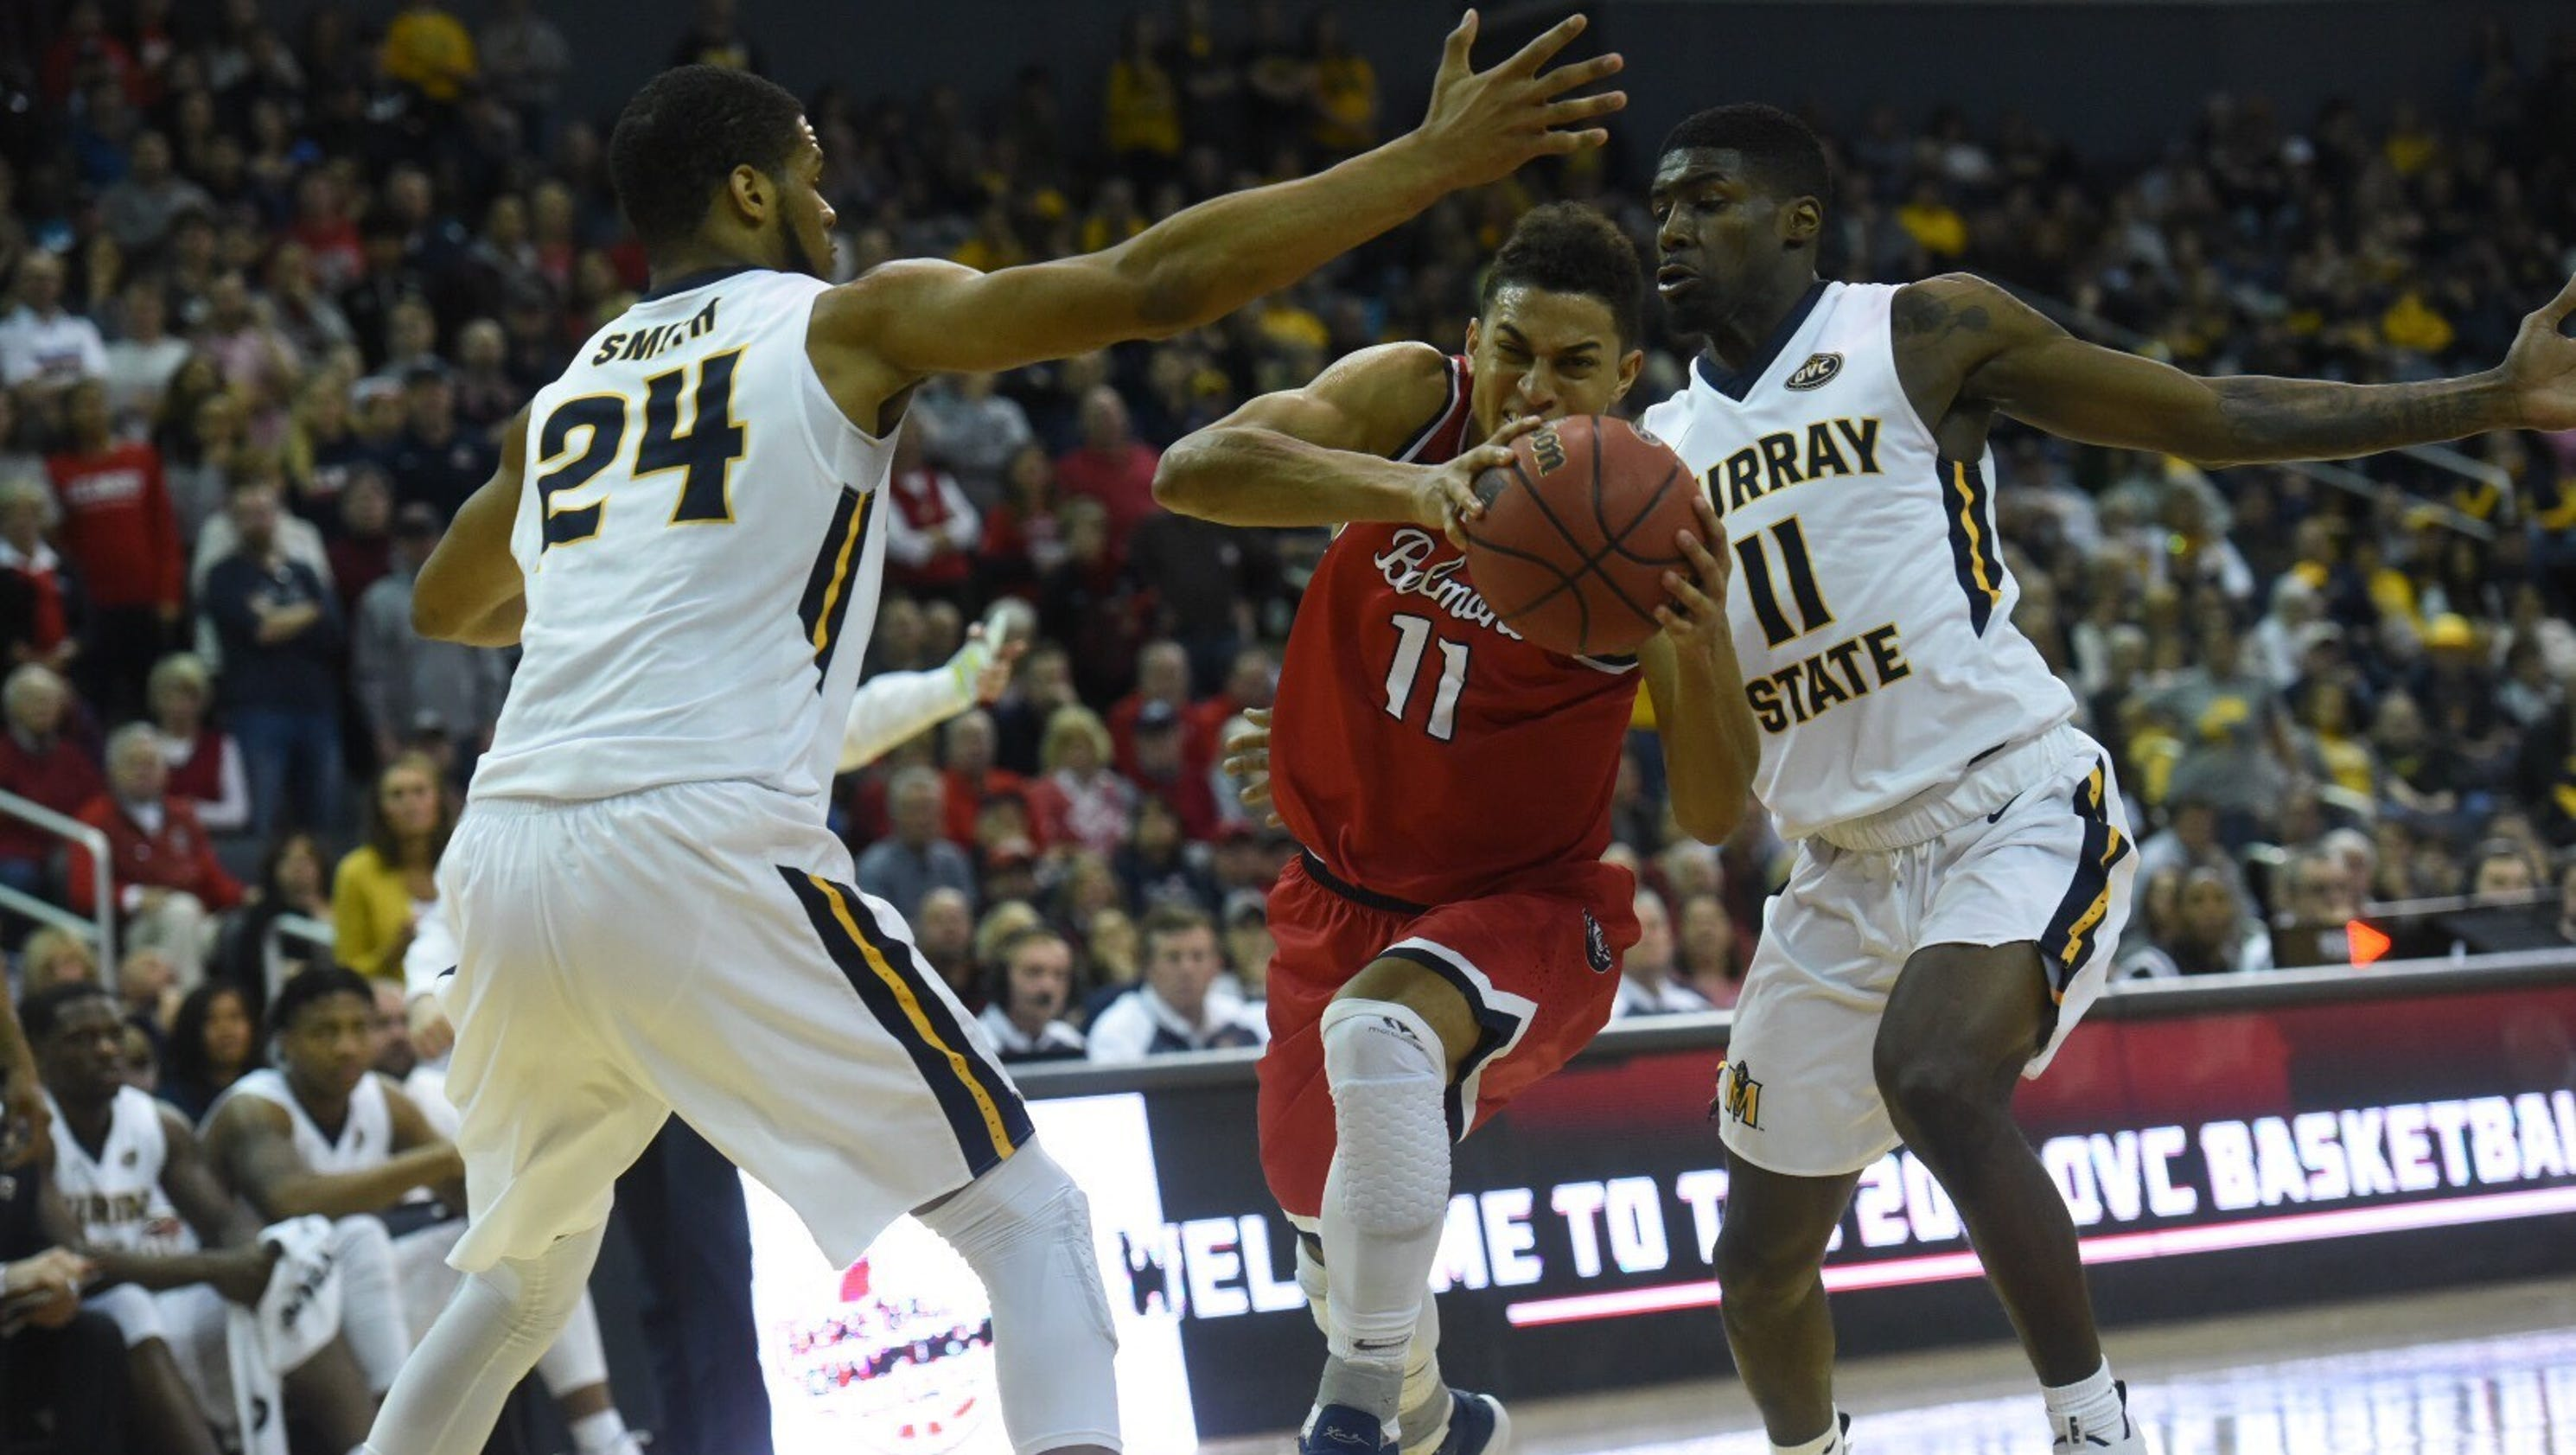 Belmont basketball loses OVC championship to Murray State